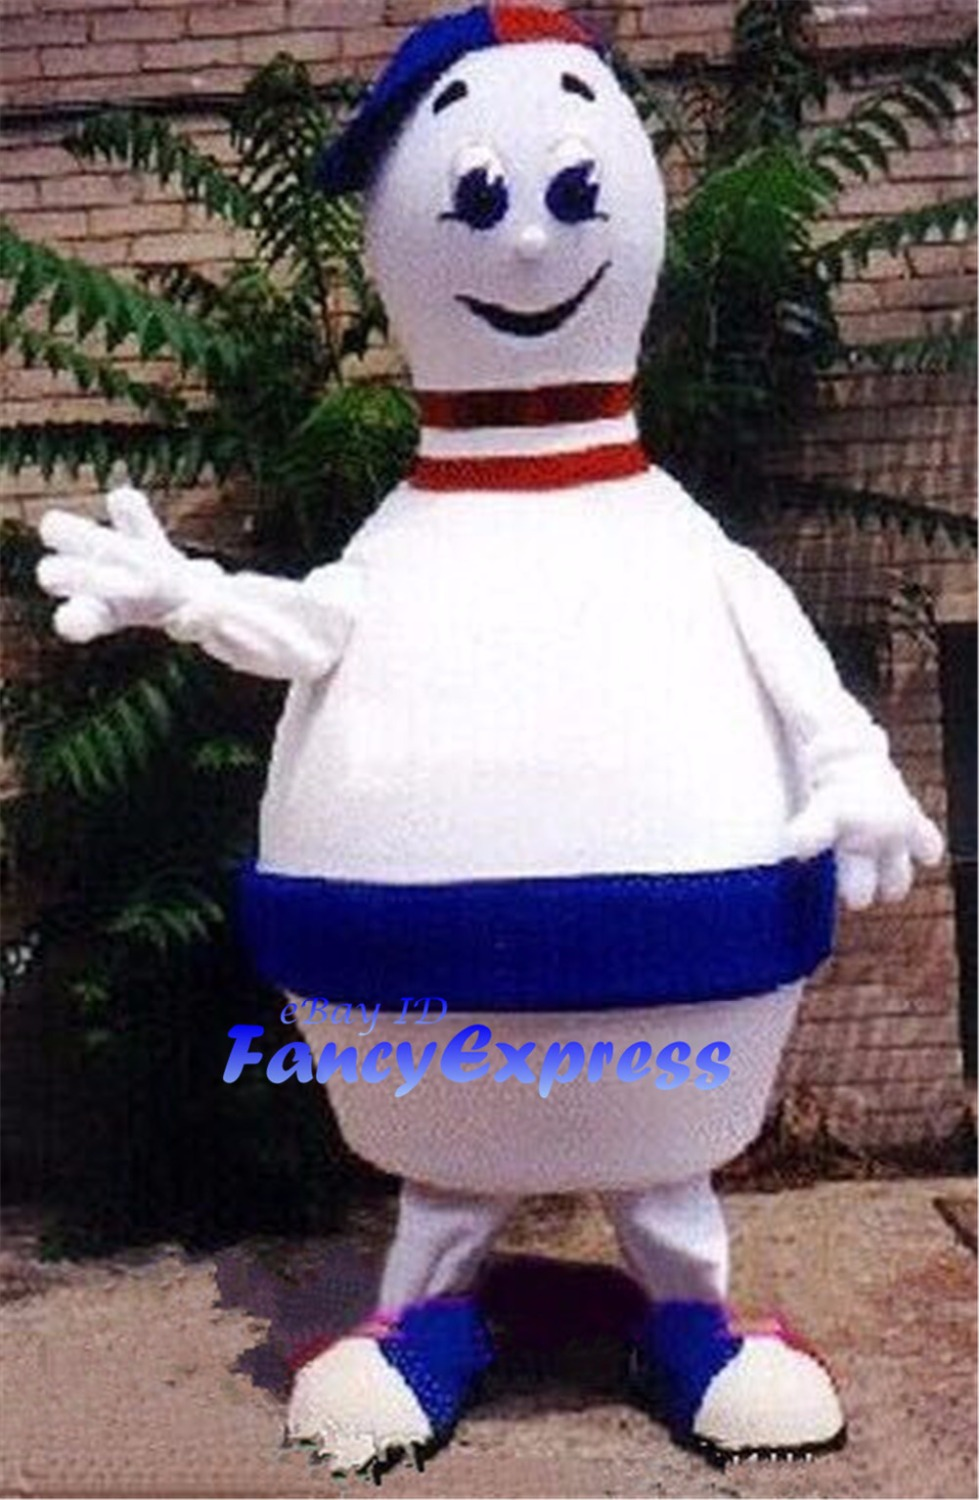 Bowling Ball Mascot Costume Birthday Party Fancy Cosplay Dress Halloween Party Performance Outfit Suit Adult Size